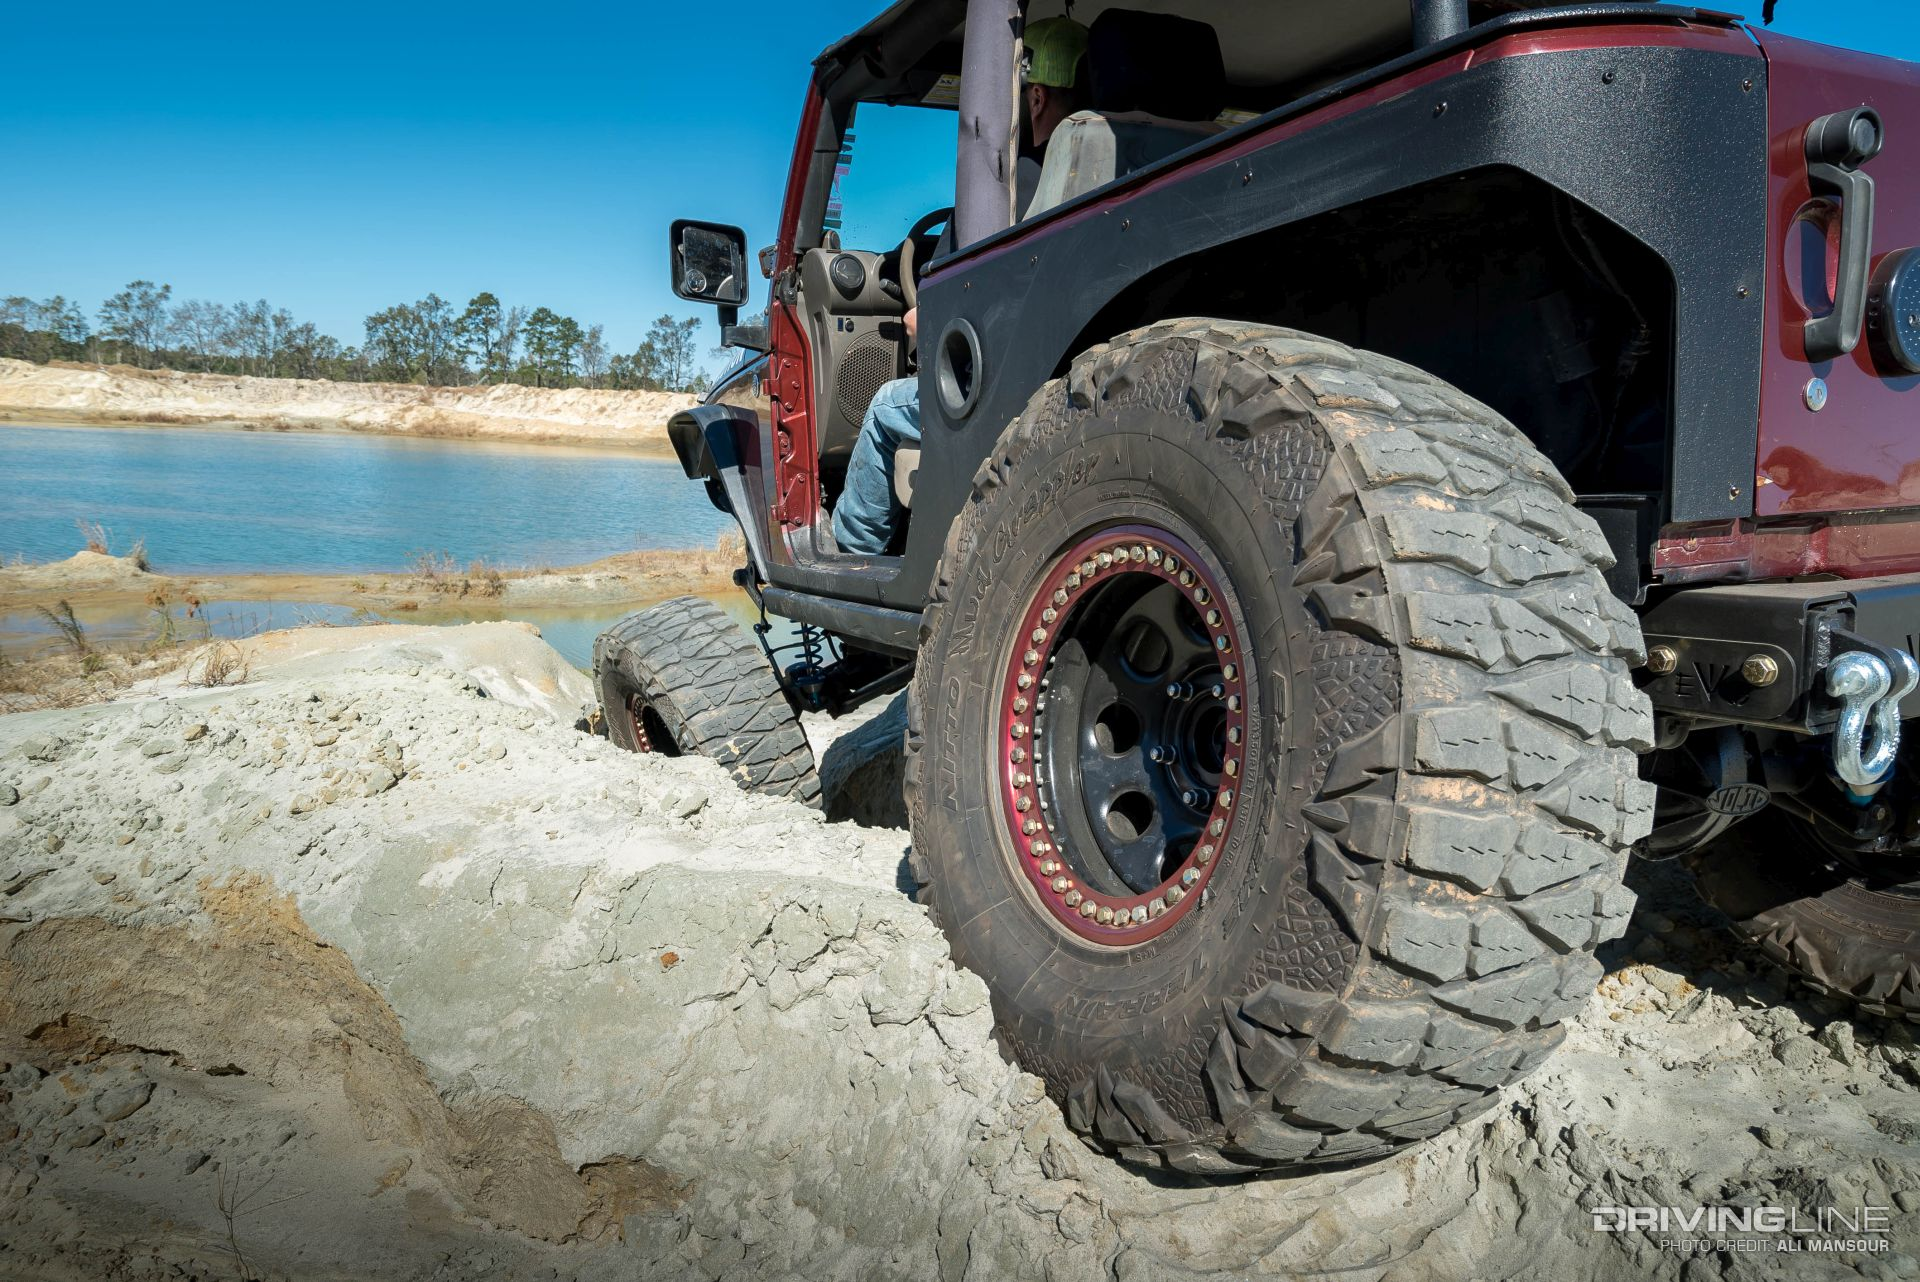 Diesel Jeep Wrangler >> 2007 Jeep Wrangler 8-inch Stretch With 37-inch Mud Grapplers | DrivingLine